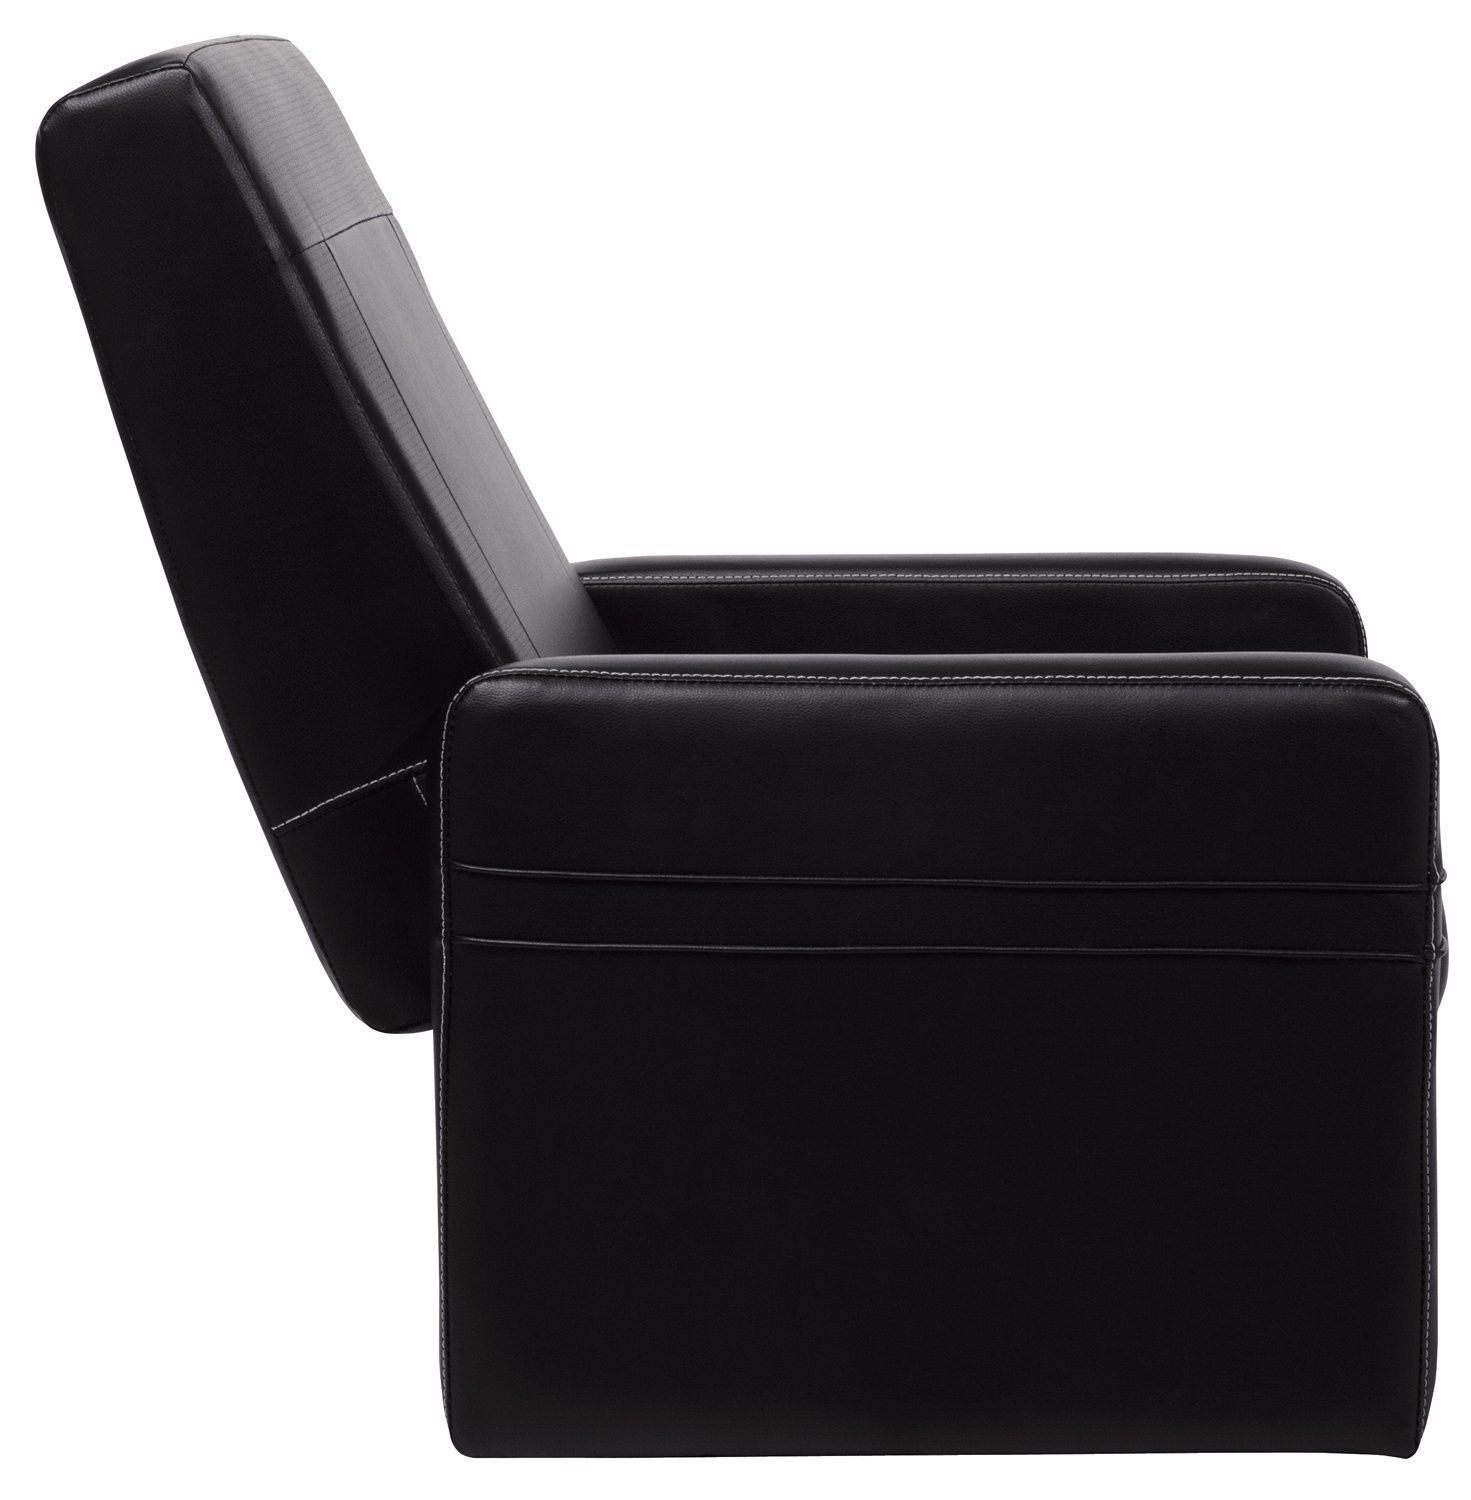 gaming chair ottoman latest design serta in puresoft black faux leather